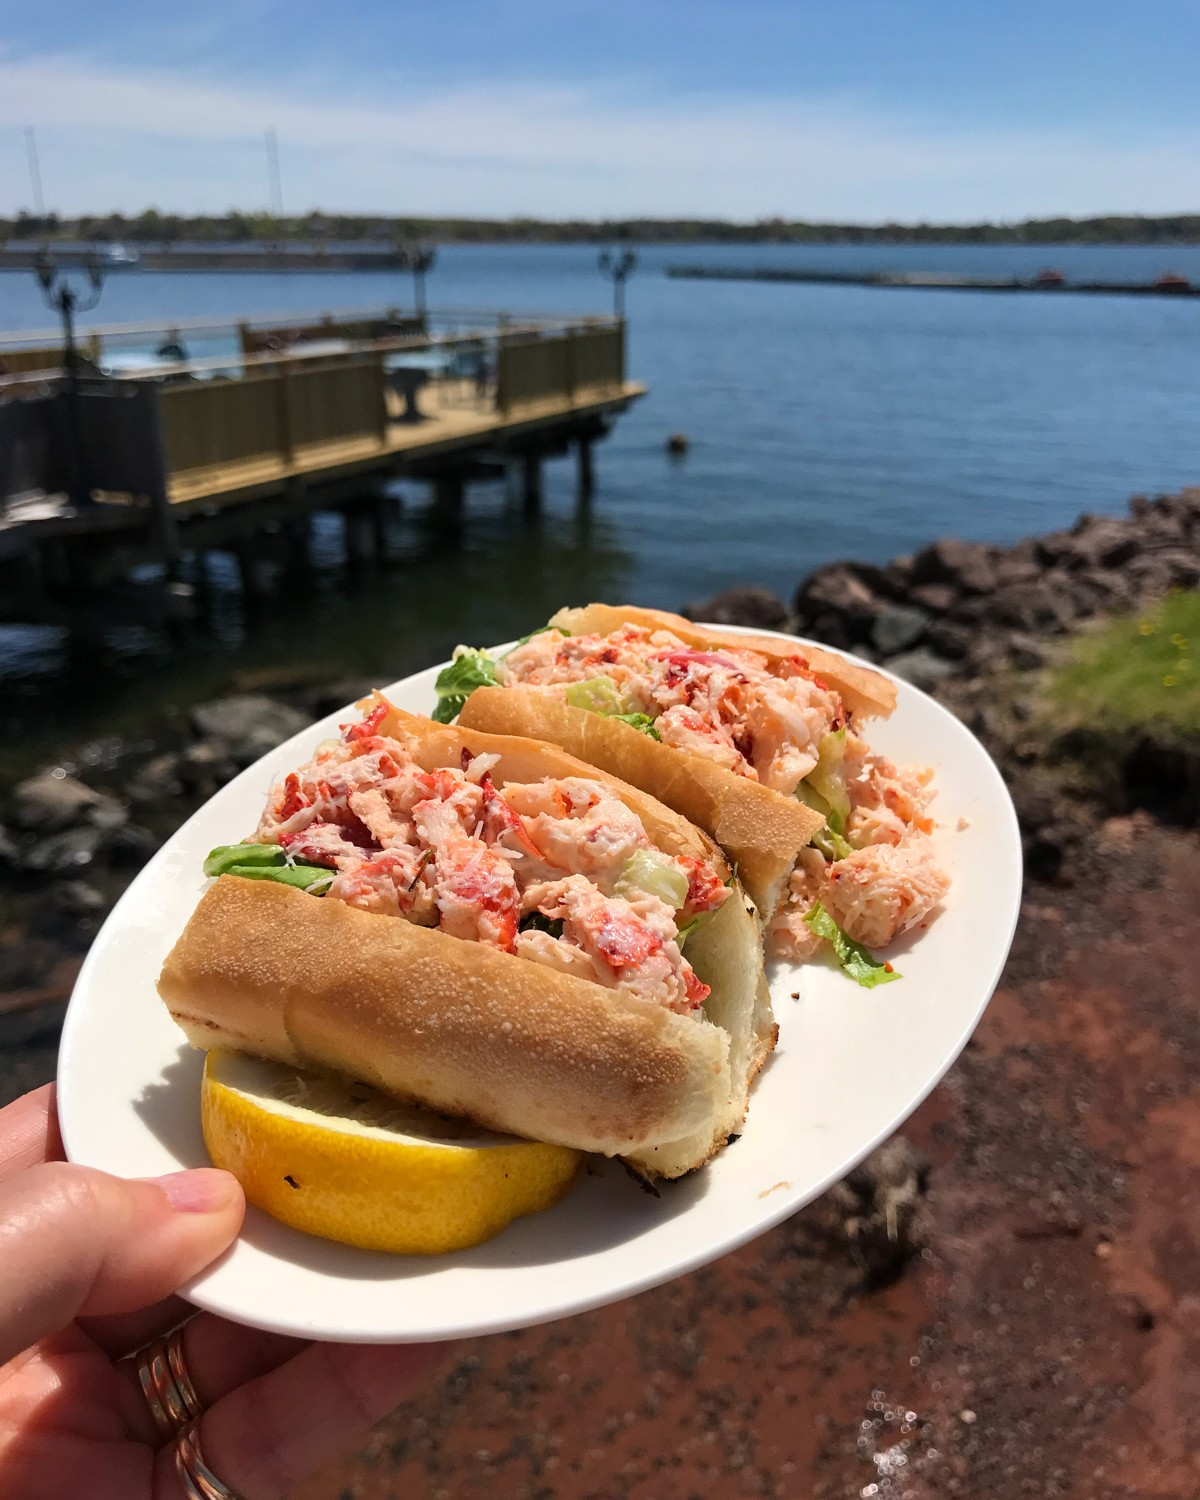 PEI Food - Lobster on the Wharf Photo Heatheronhertravels.com